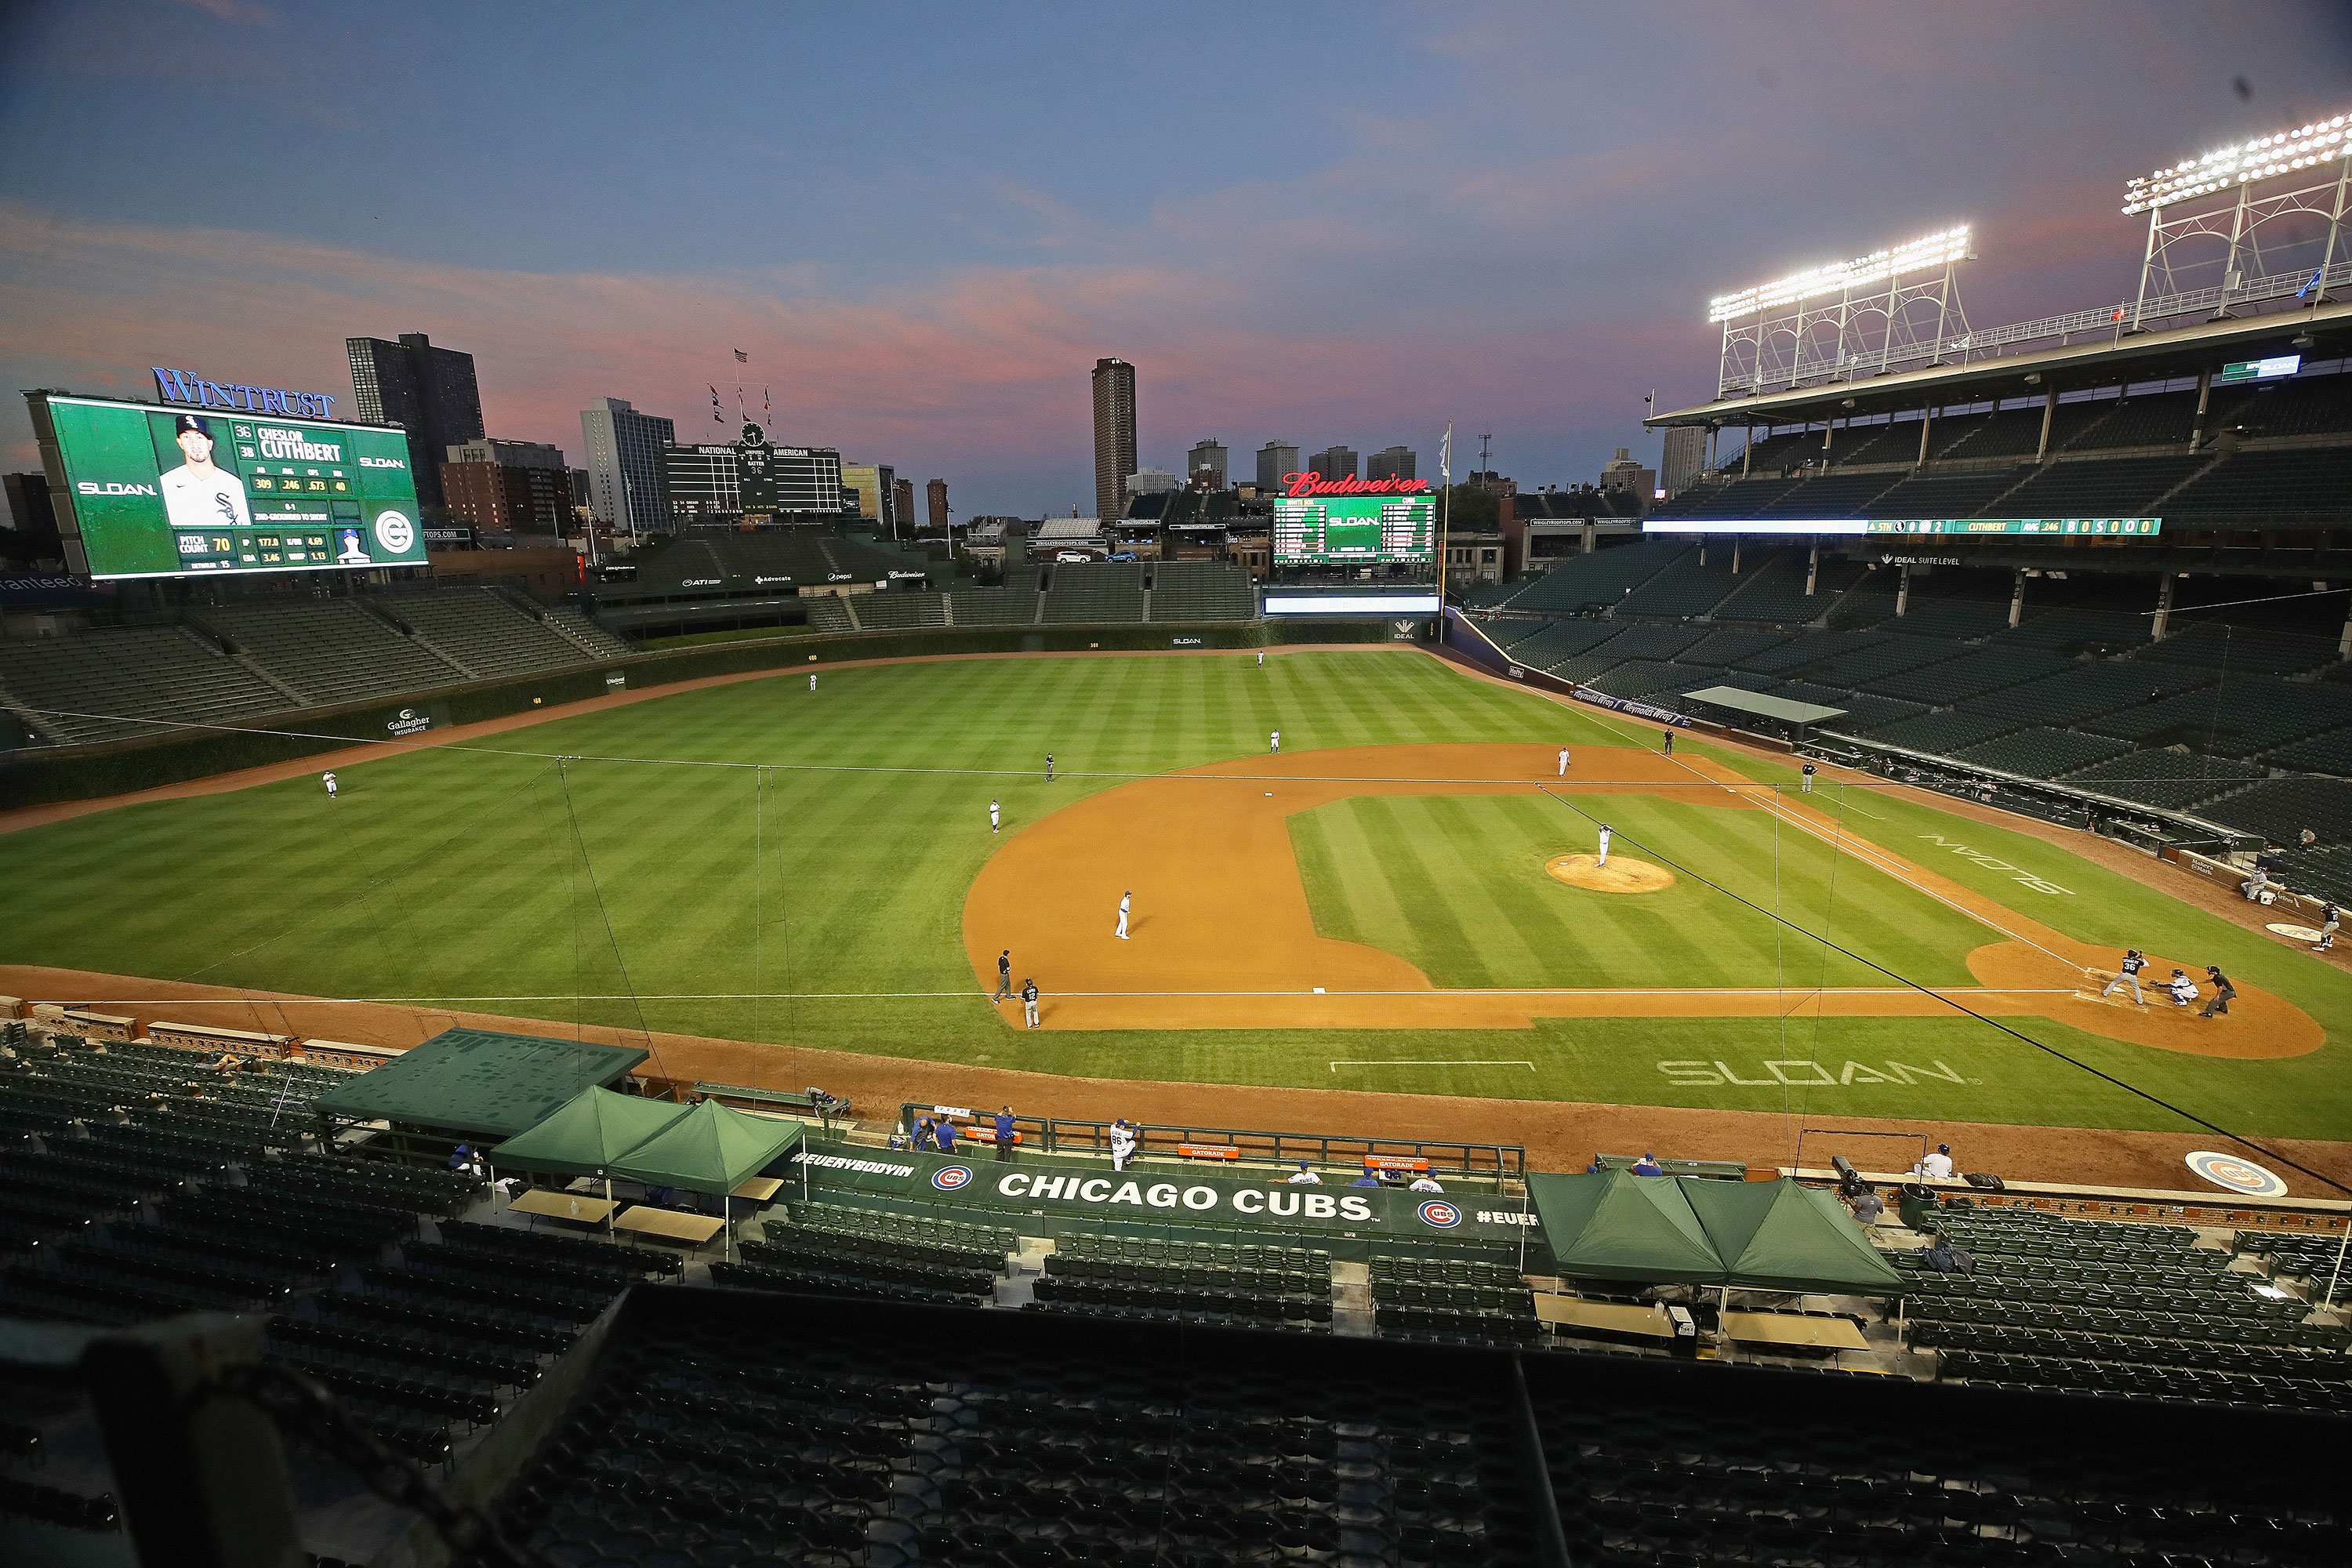 The Chicago Cubs take on the Chicago White Sox in an empty Wrigley Field on July 19.